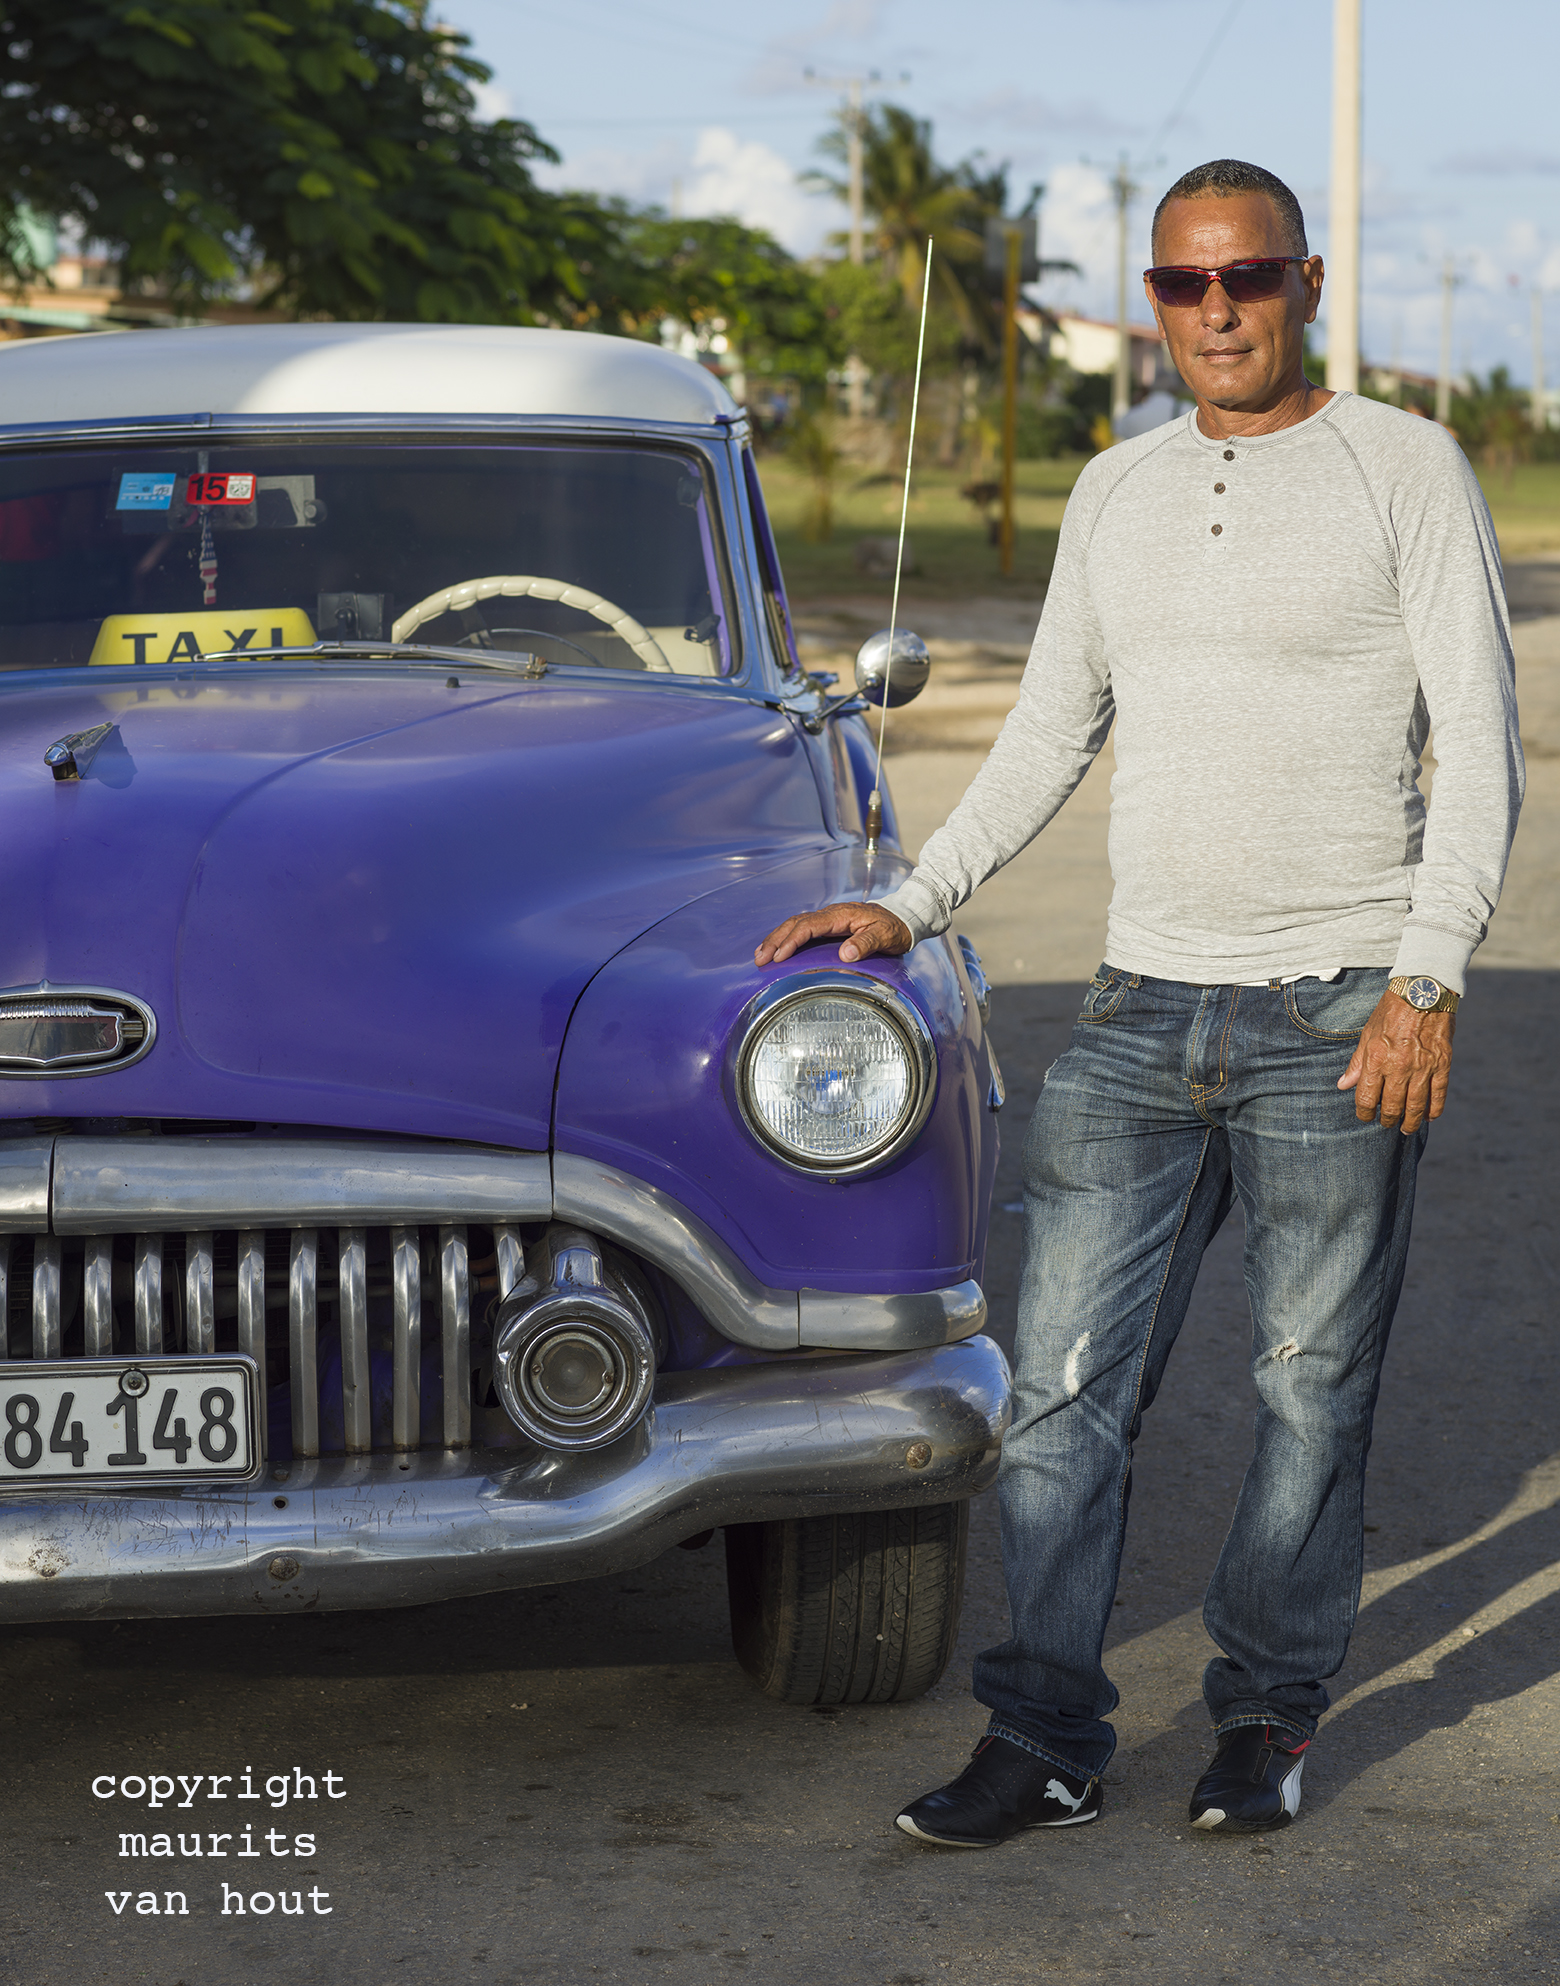 portrait of a man, Varadero Cuba, by Dutch photographer Maurits van Hout